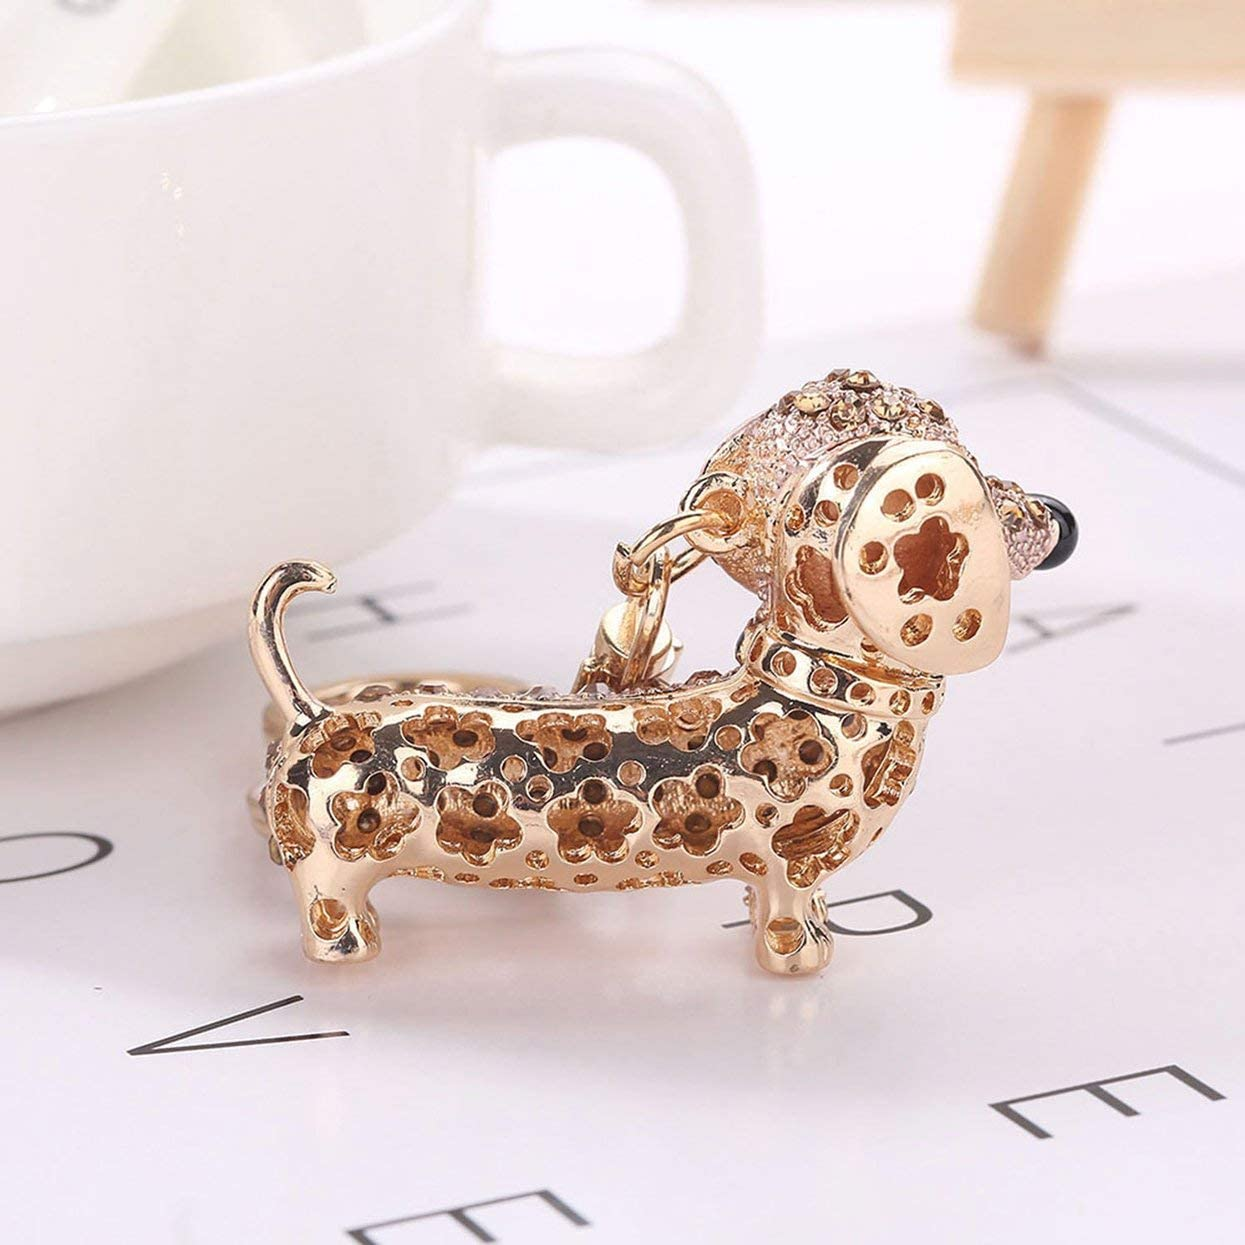 Detectorcatty Diamond Cute Puppy Keychain Bag Keyring Pendant Hanging Ornaments Decor BZ370 Essential Accessories